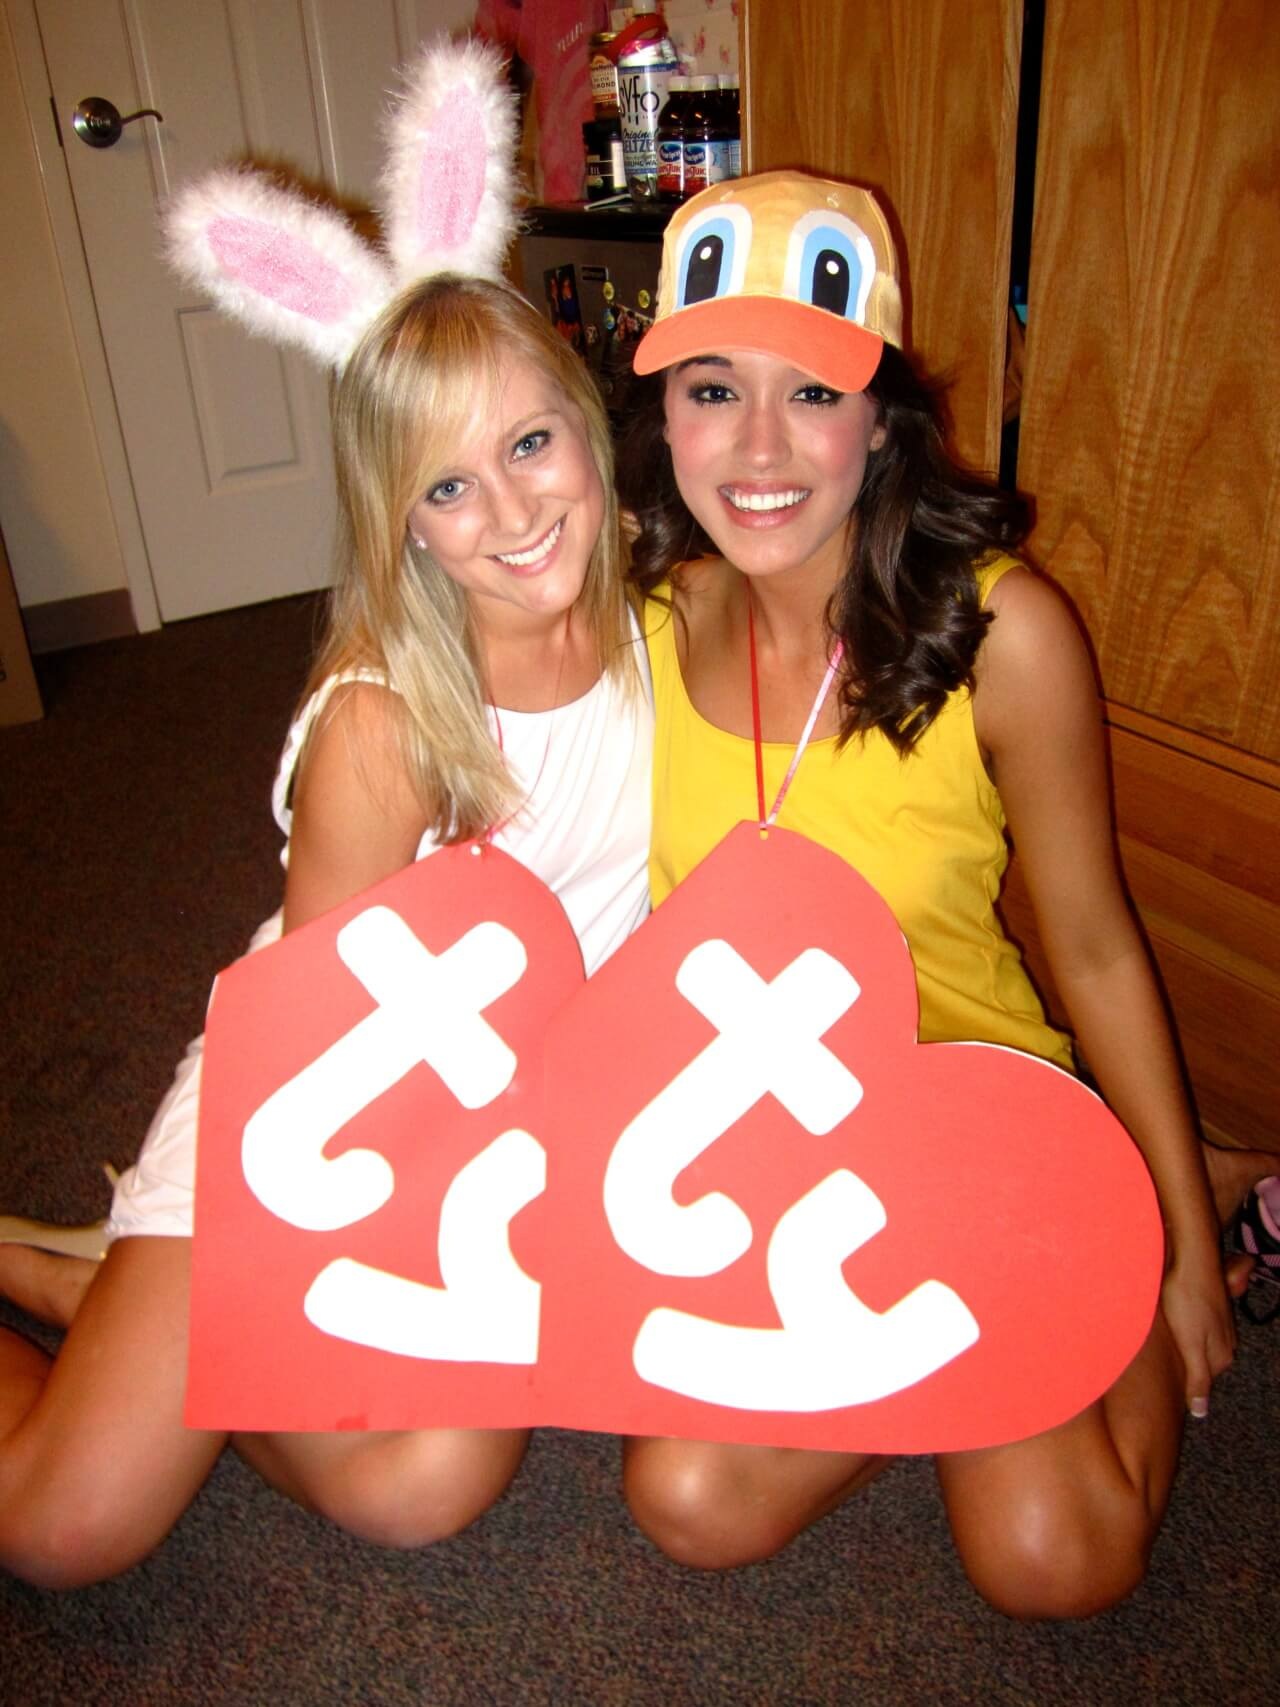 9 Adorable Halloween Costumes for College Kids - College Magazine